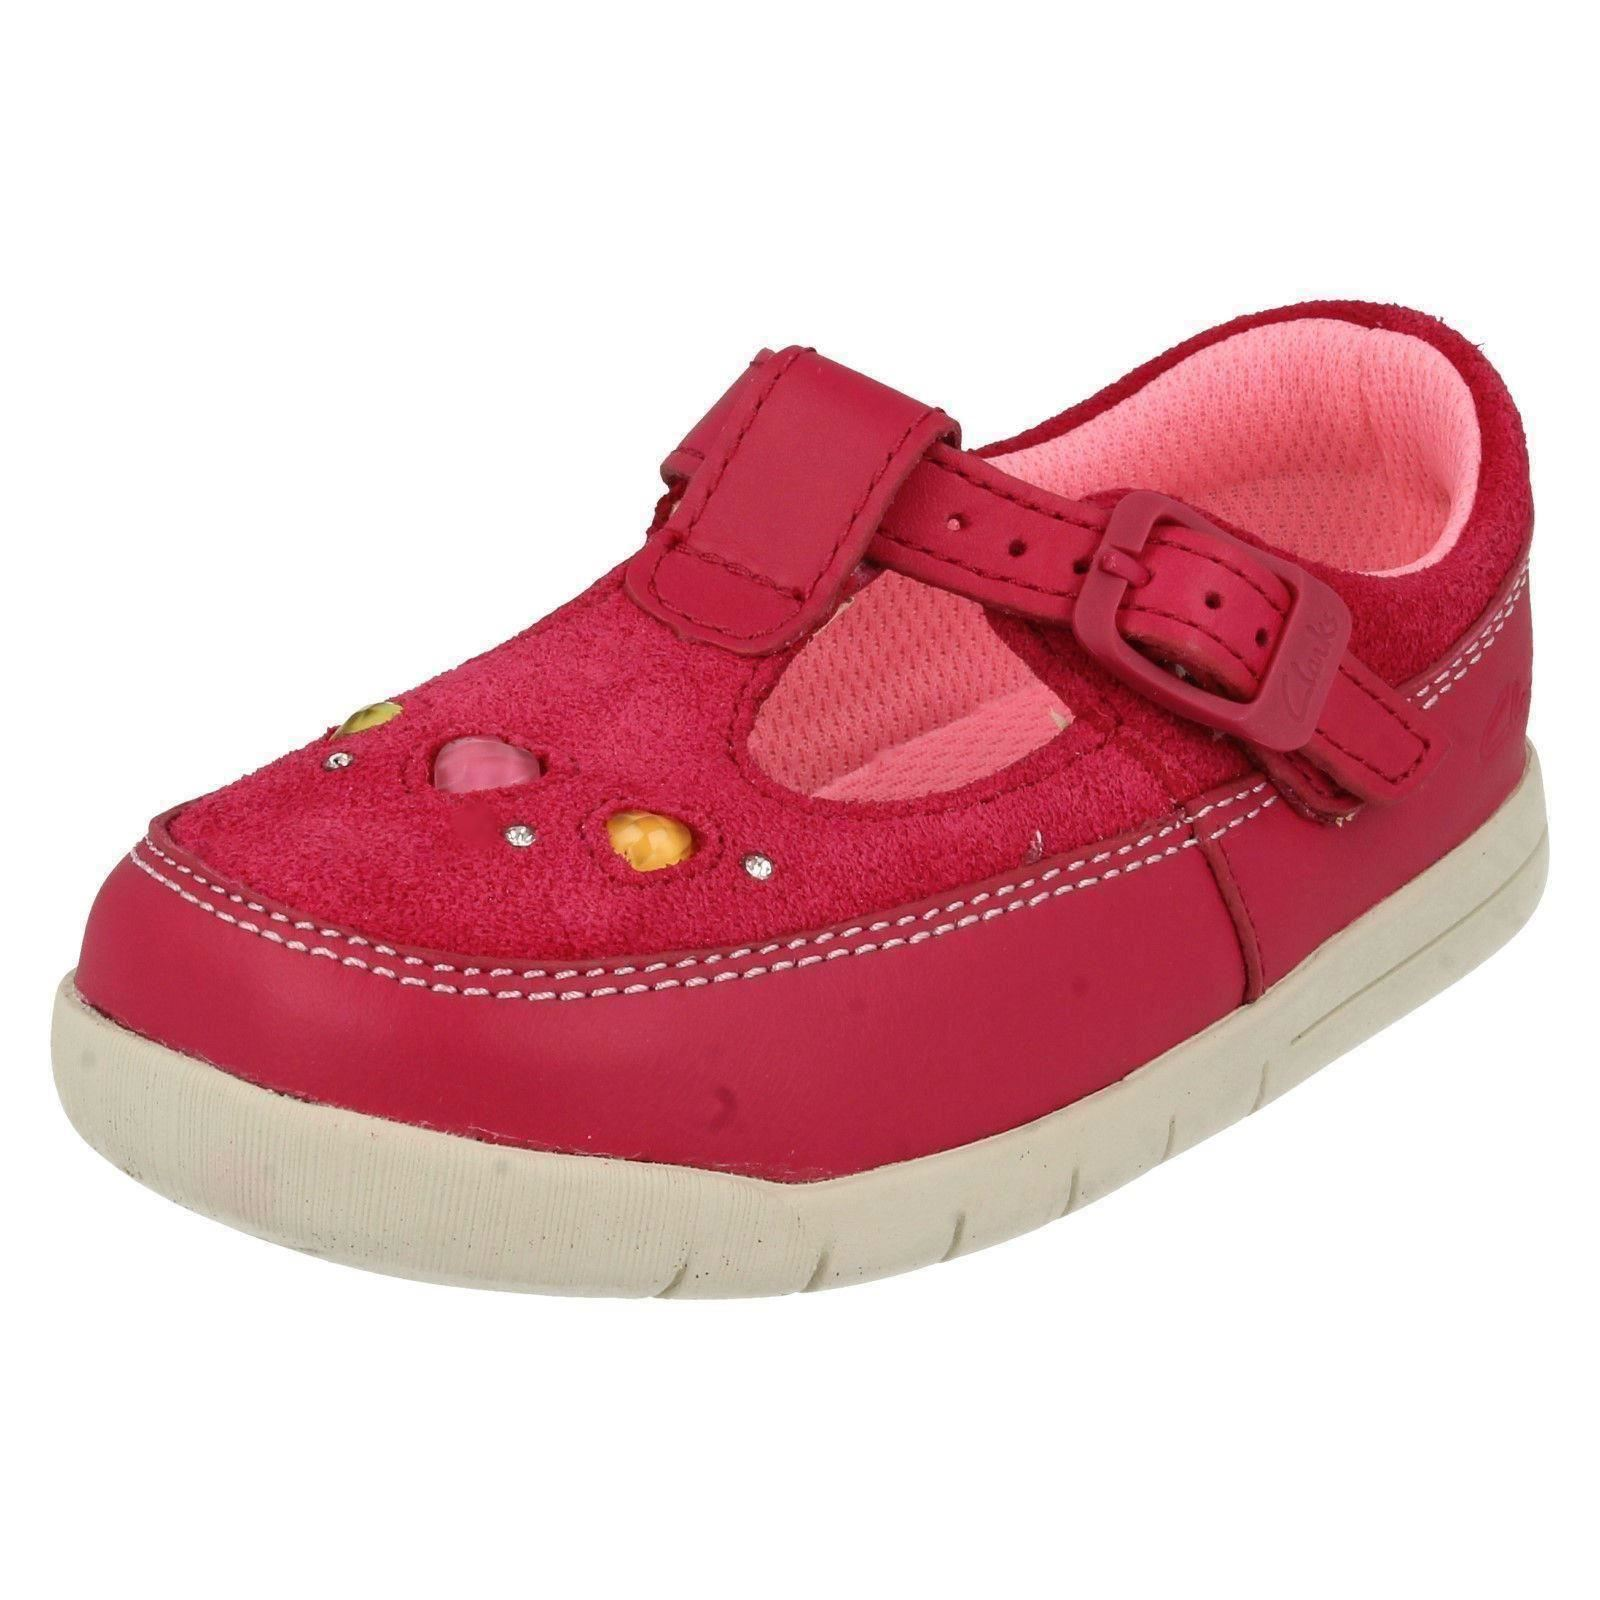 Girls Clarks Buckle Shoes Crazy Dot